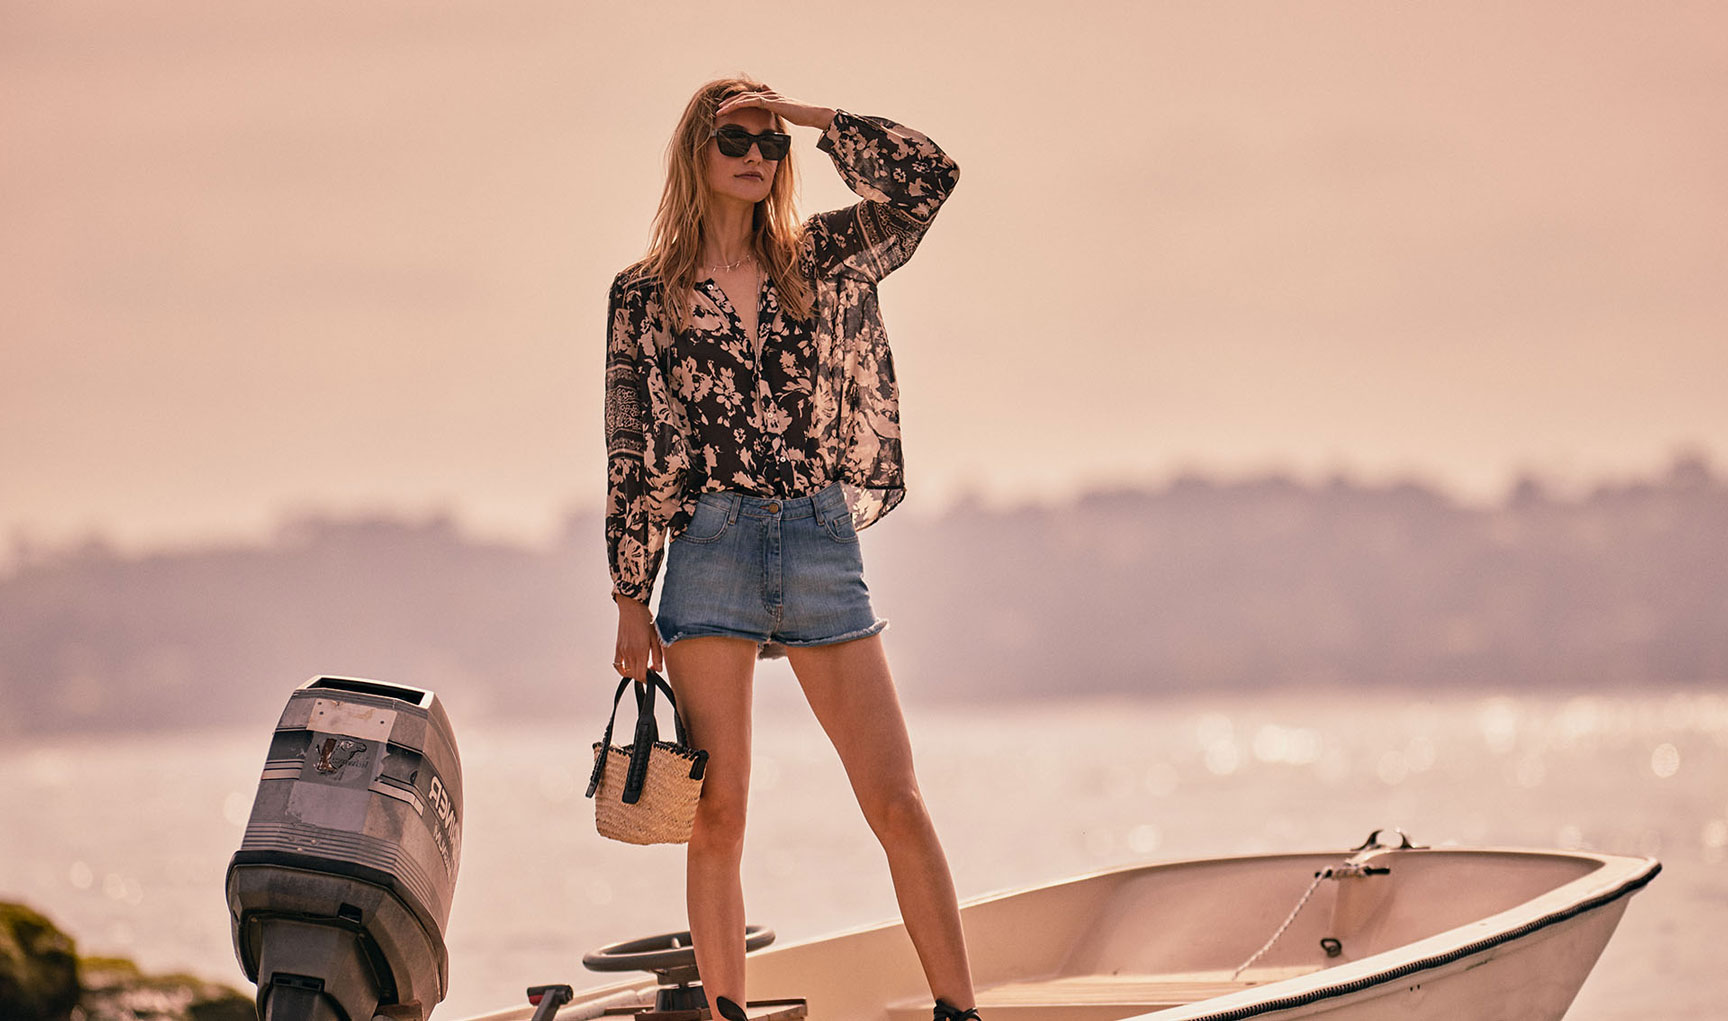 a woman on a boat, the sea, the beach, wearing a printed Ba&sh blouse, denim shorts, a wicker bag and sunglasses